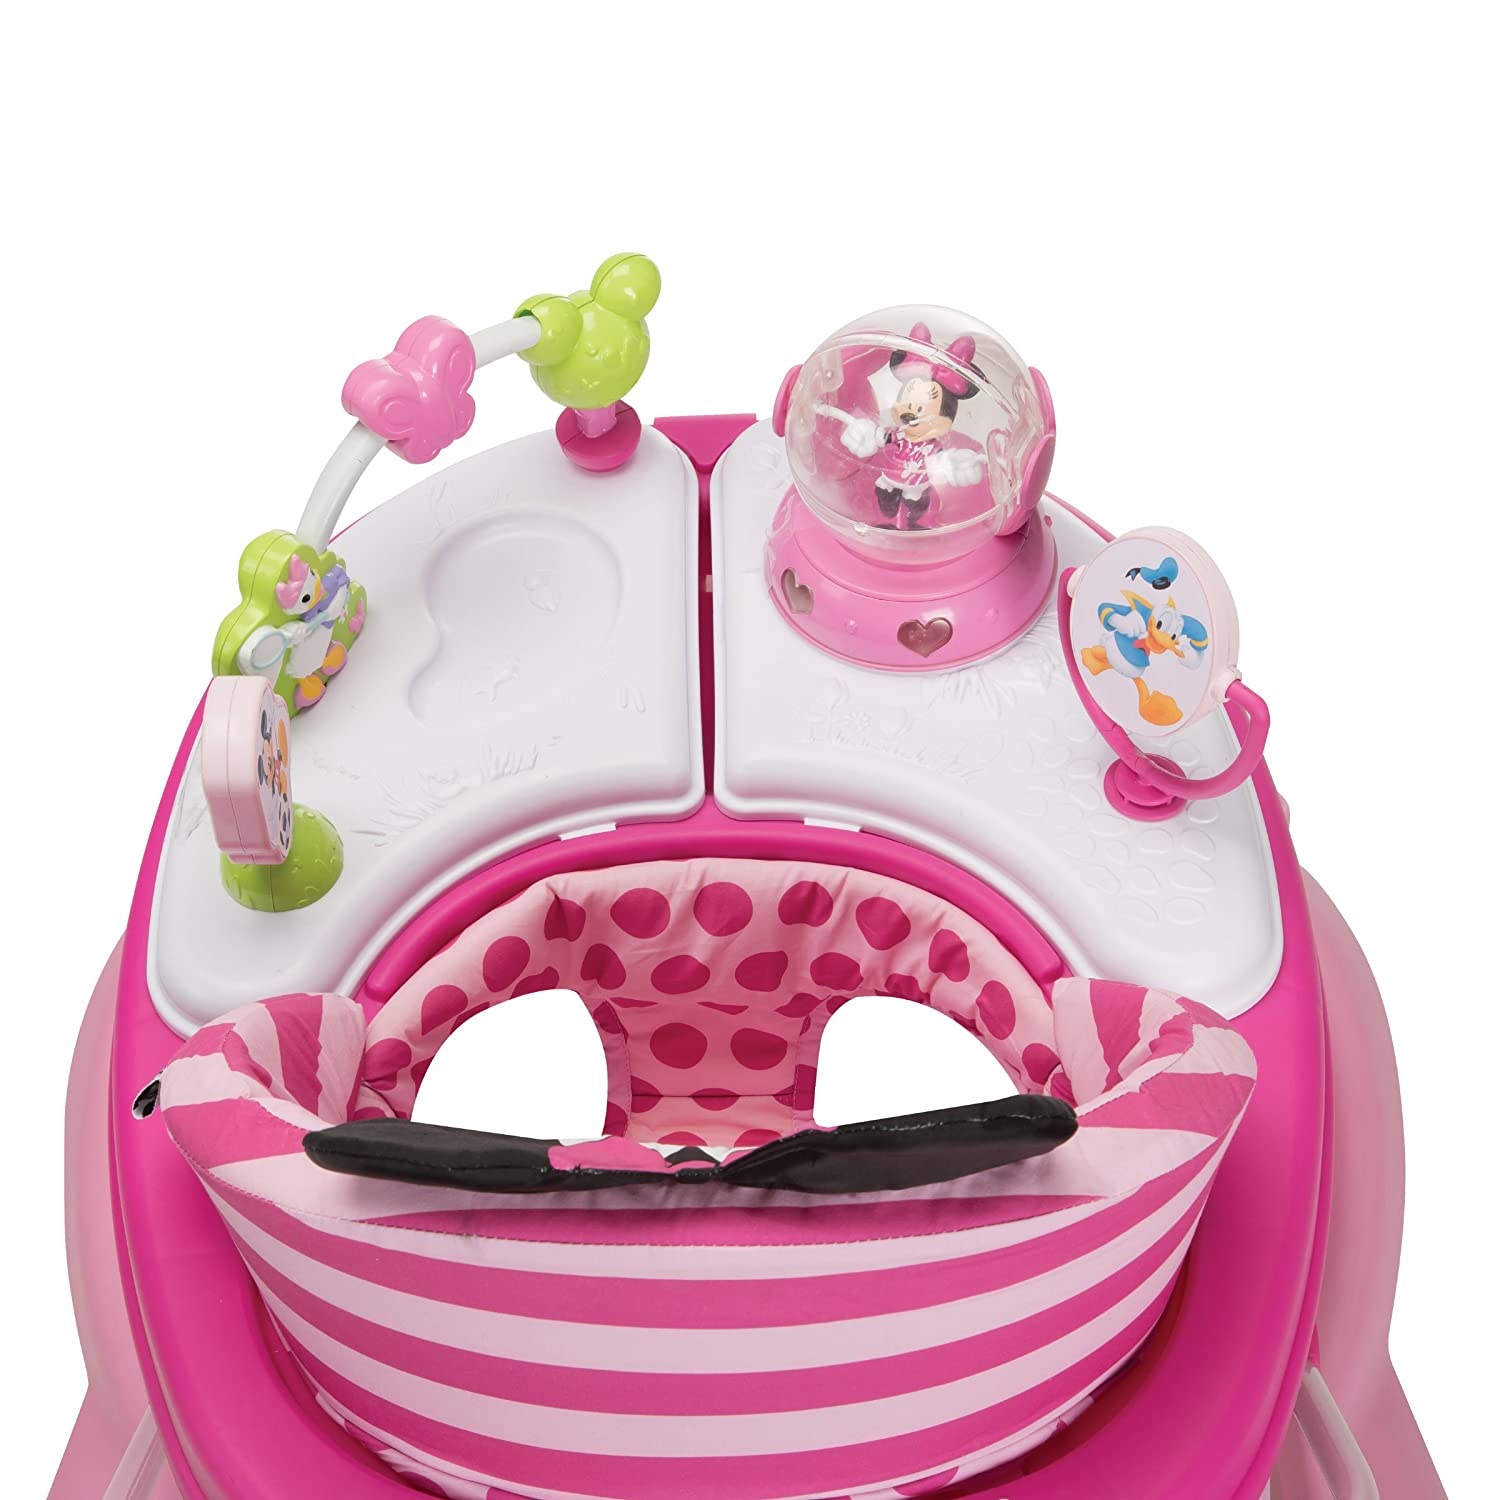 Amazon.com: Best Infant Baby Minnie Mouse Walker Chair Seat ...